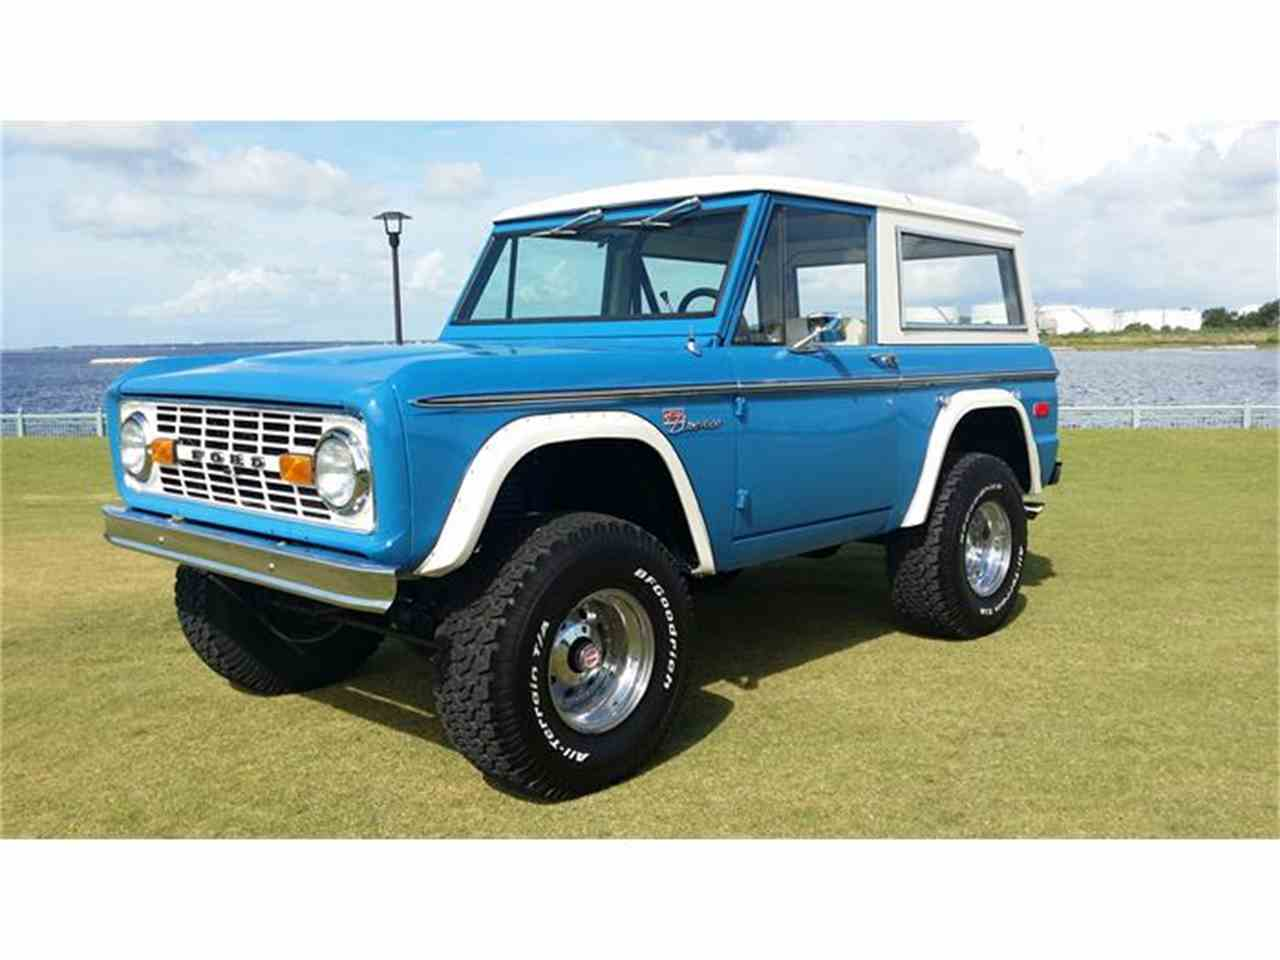 Large Picture of '76 Ford Bronco located in Florida - $89,900.00 - DW70